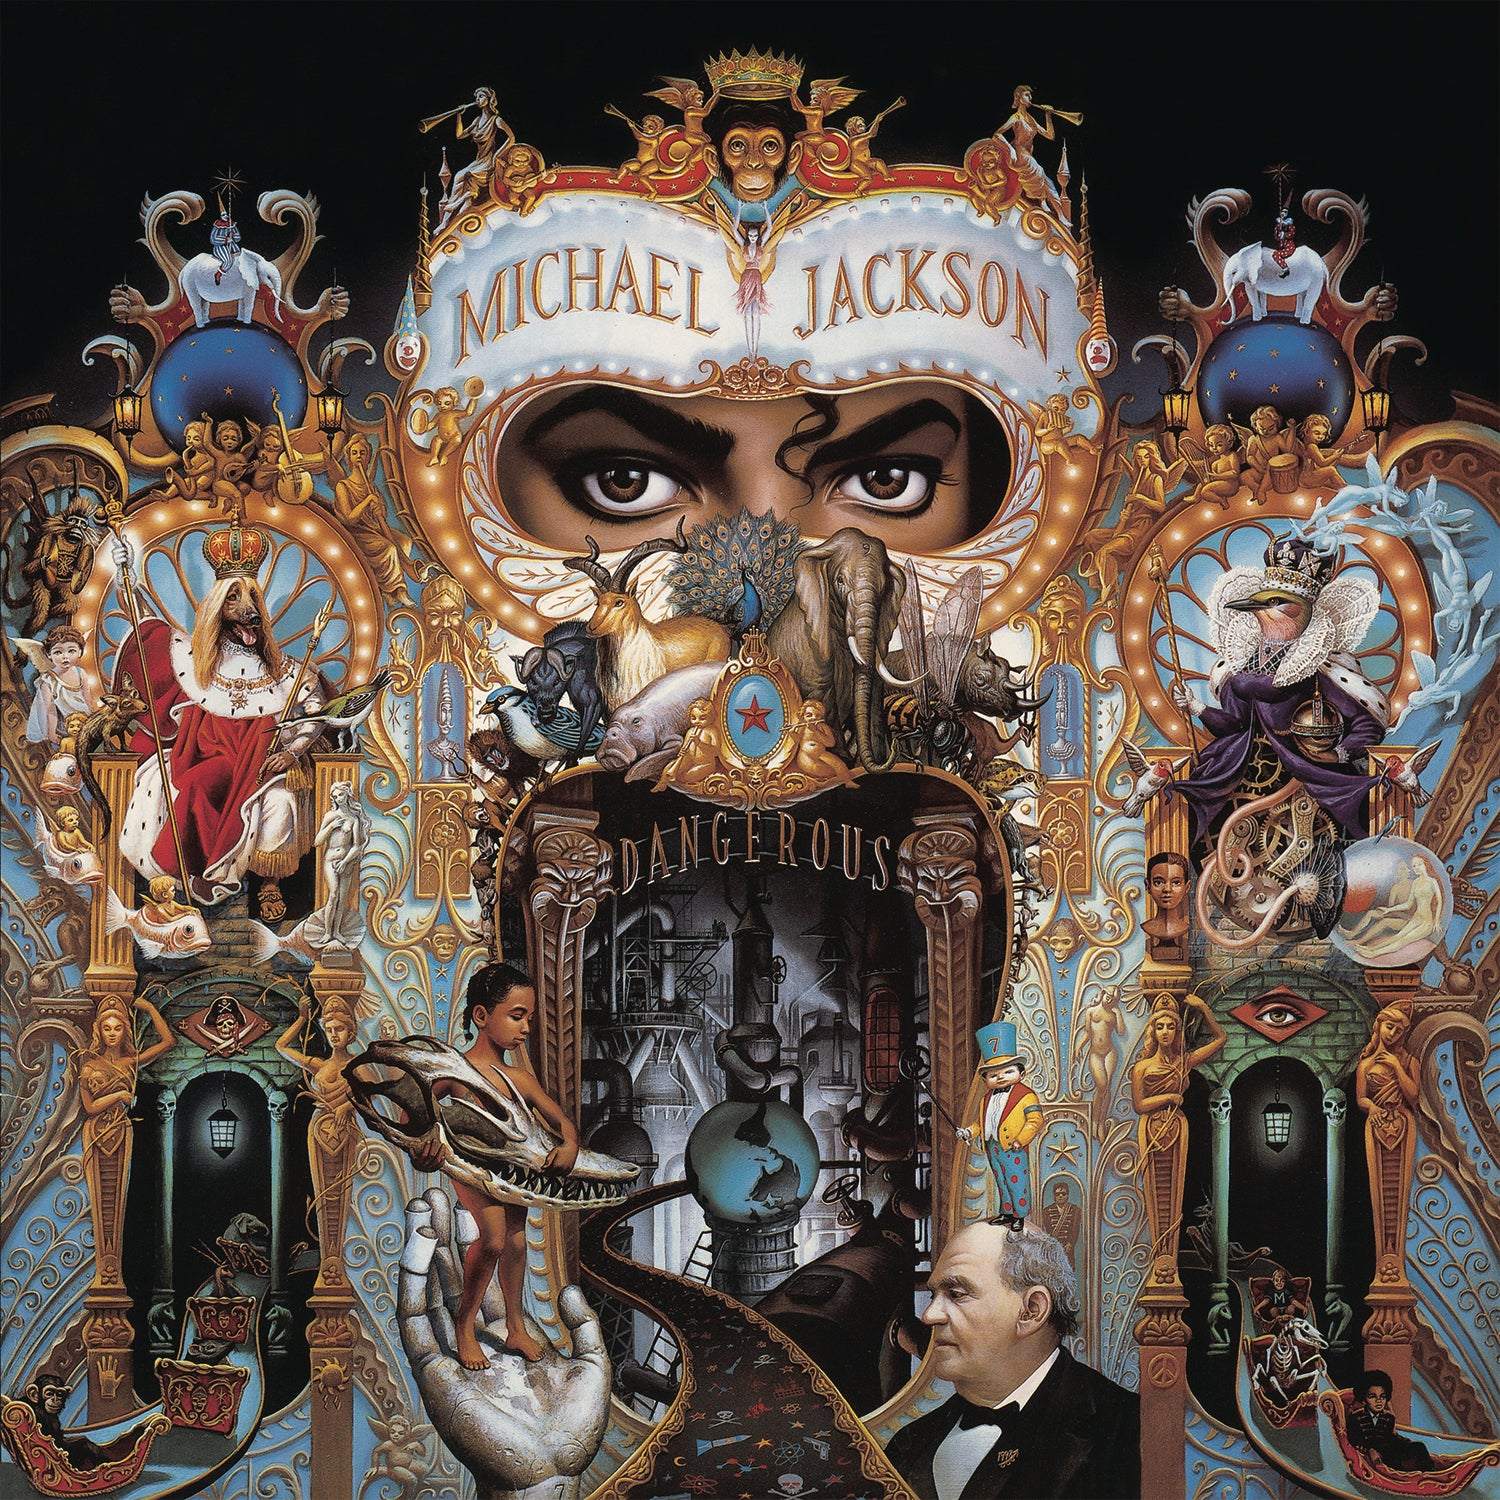 Michael Jackson - Dangerous (2LP Gatefold Sleeve)